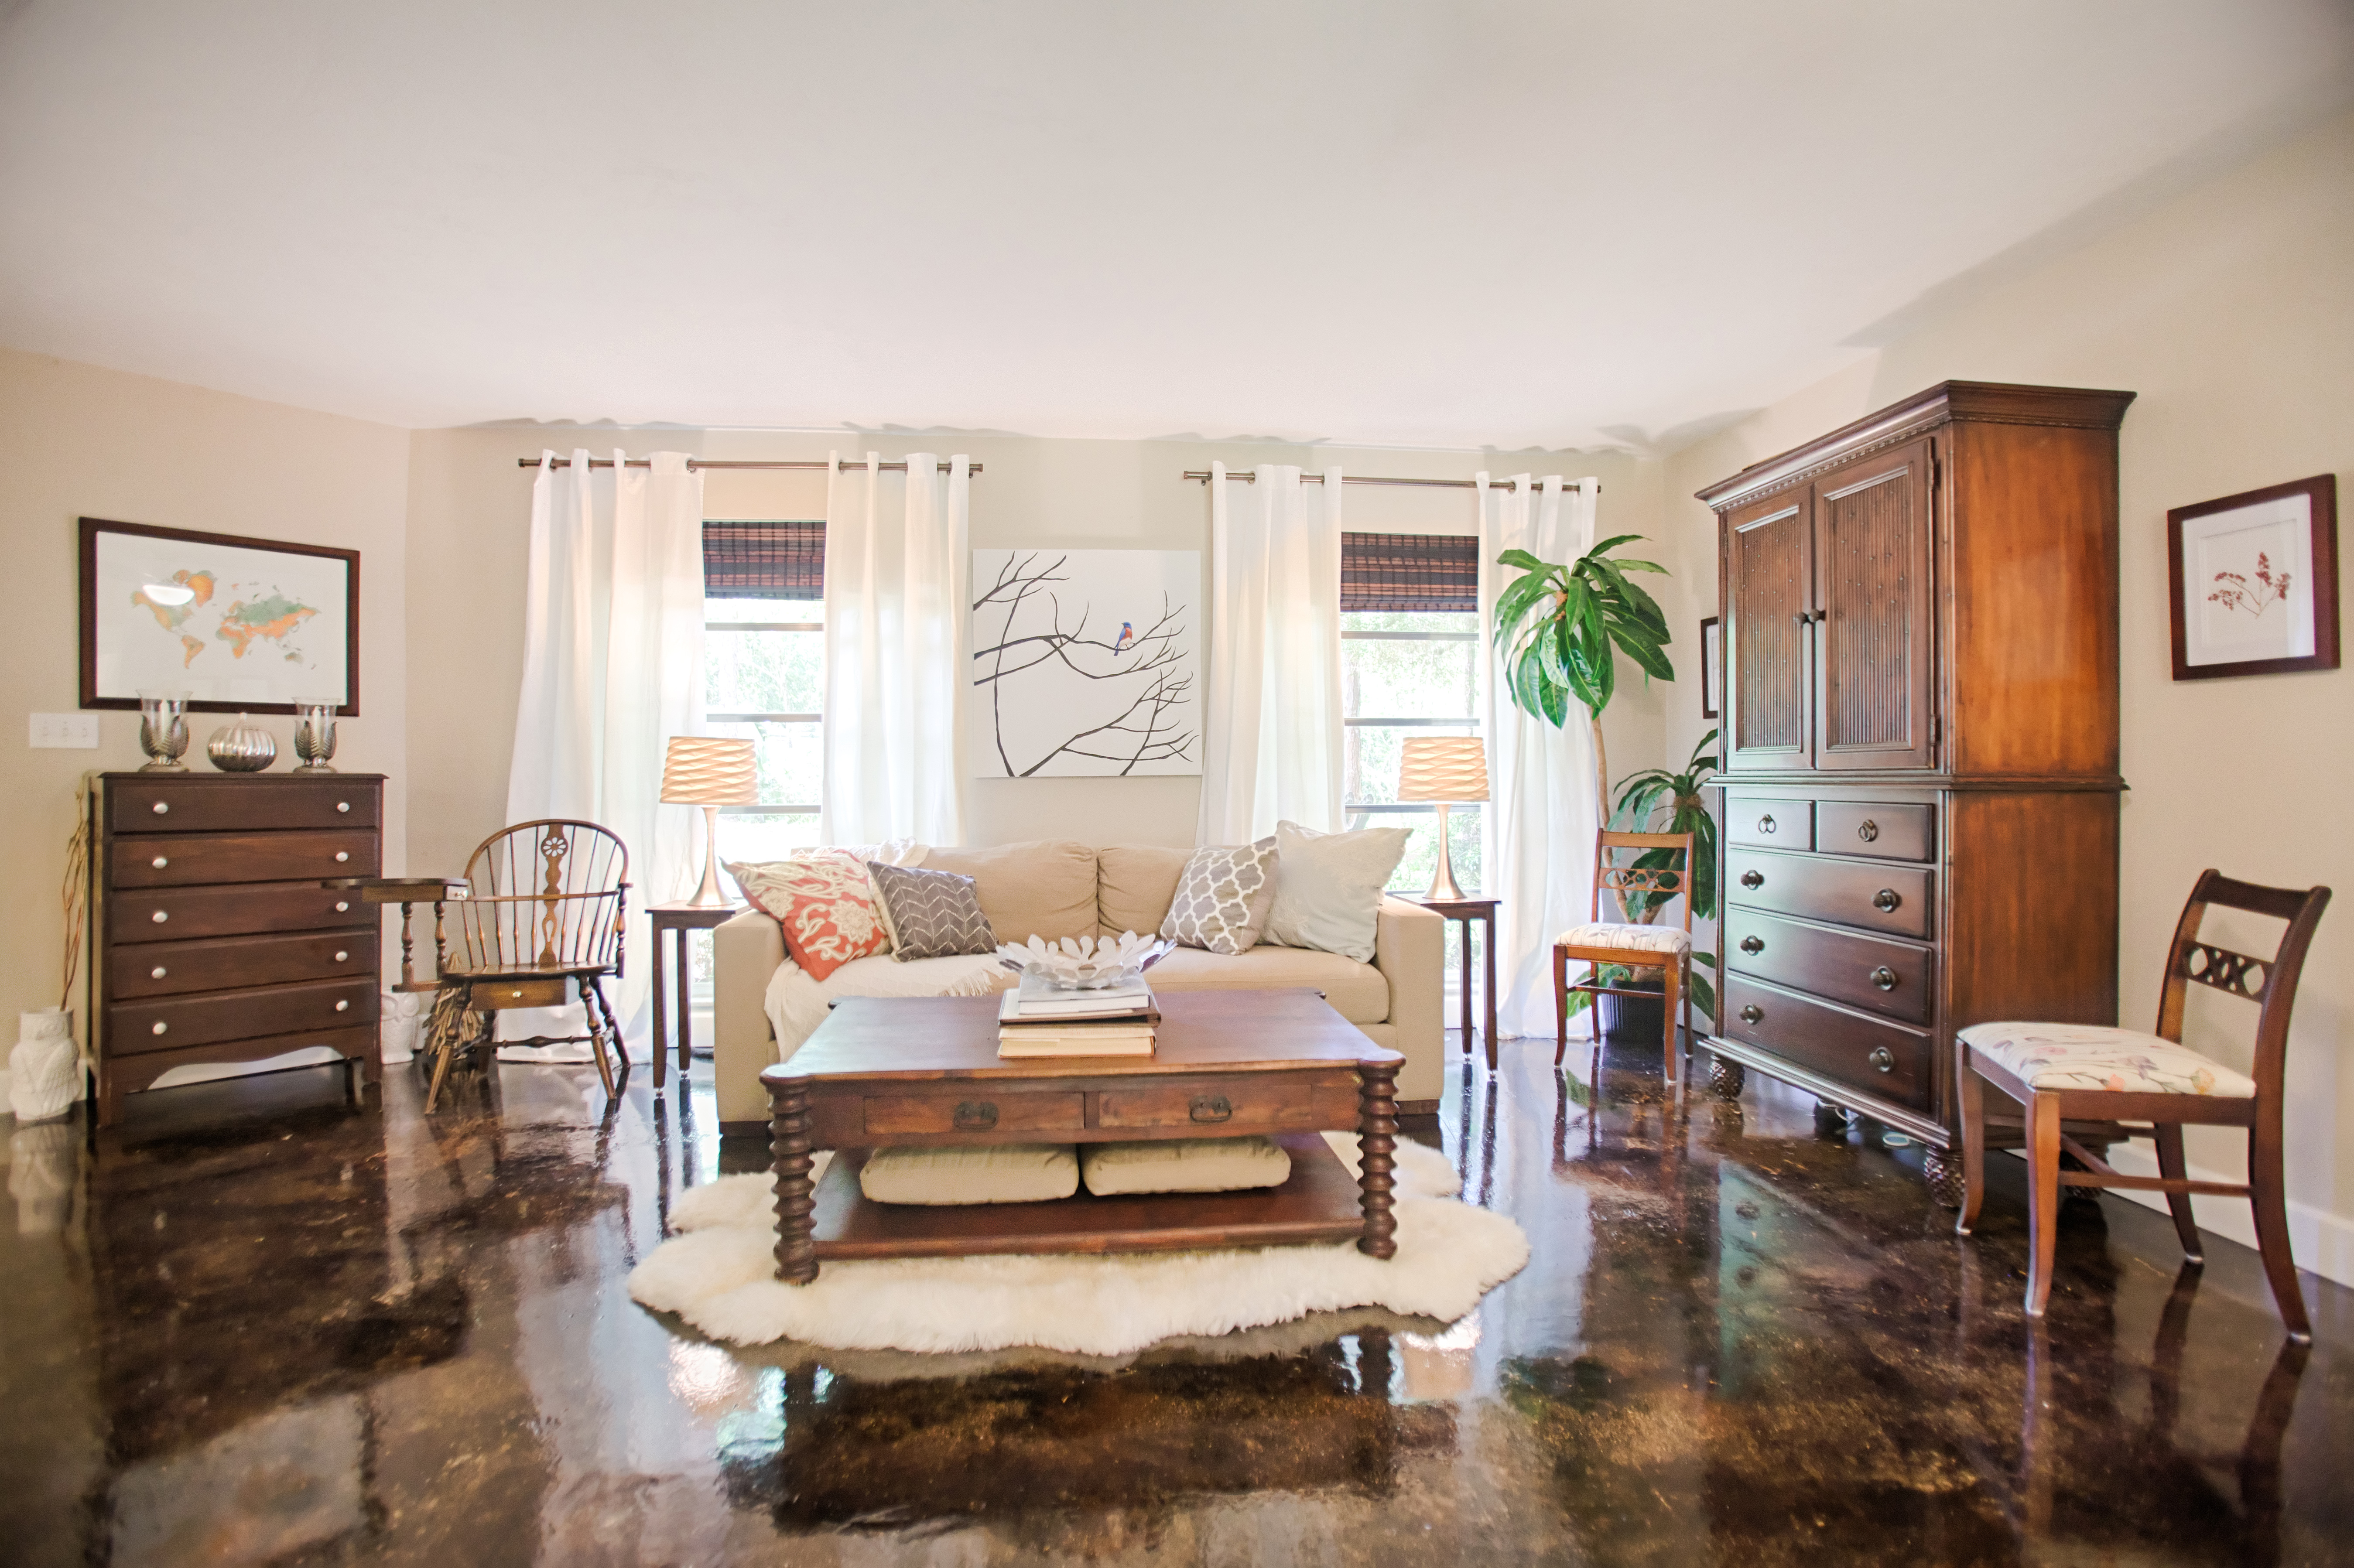 The living room, painted Benjamin Moore's Cedar Key, is decorated with secondhand furniture